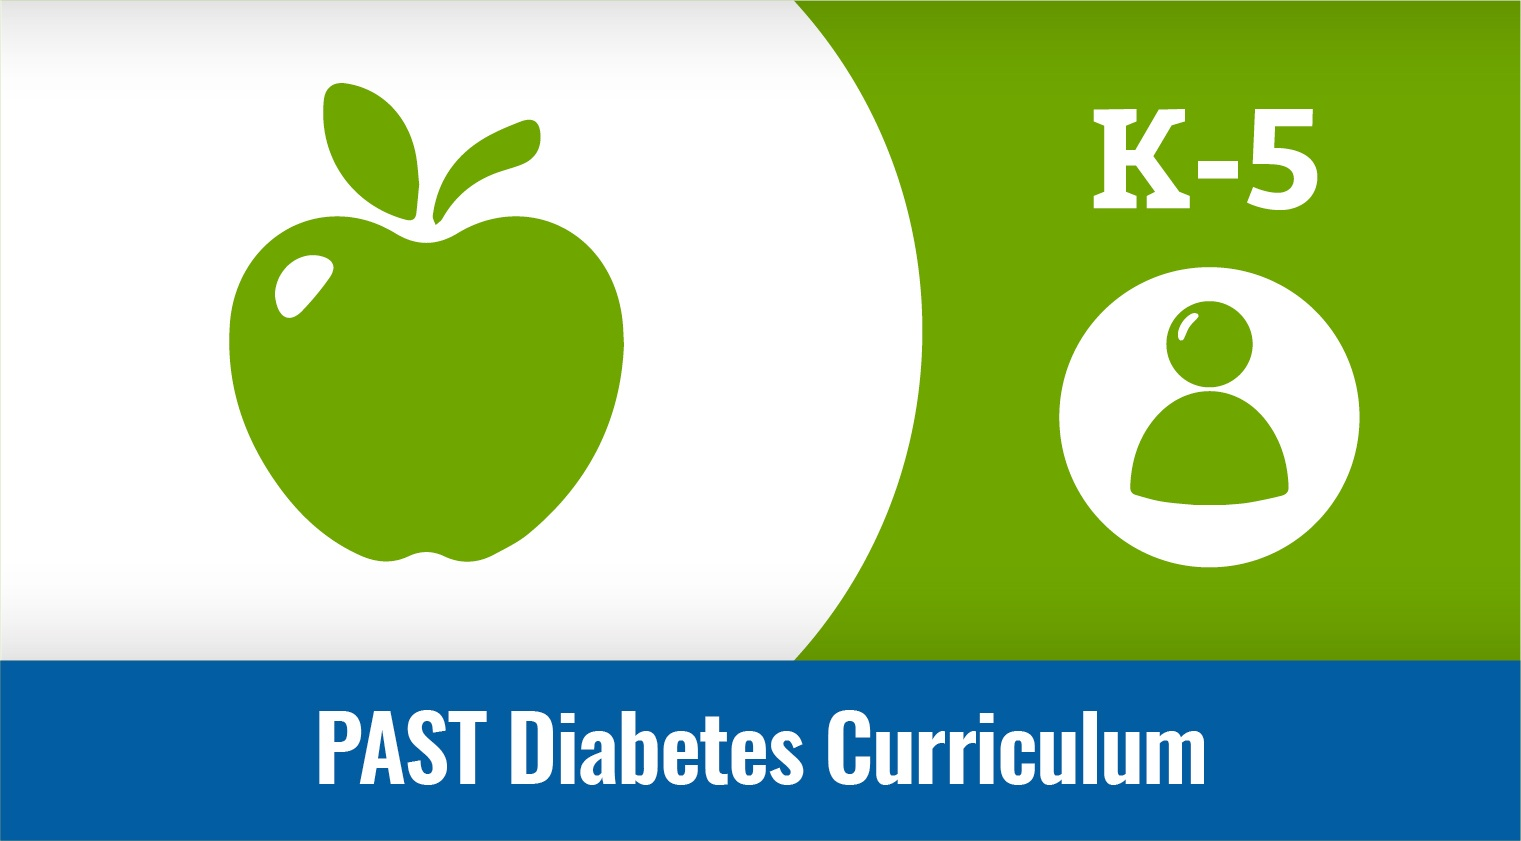 PAST Diabetes Curriculum